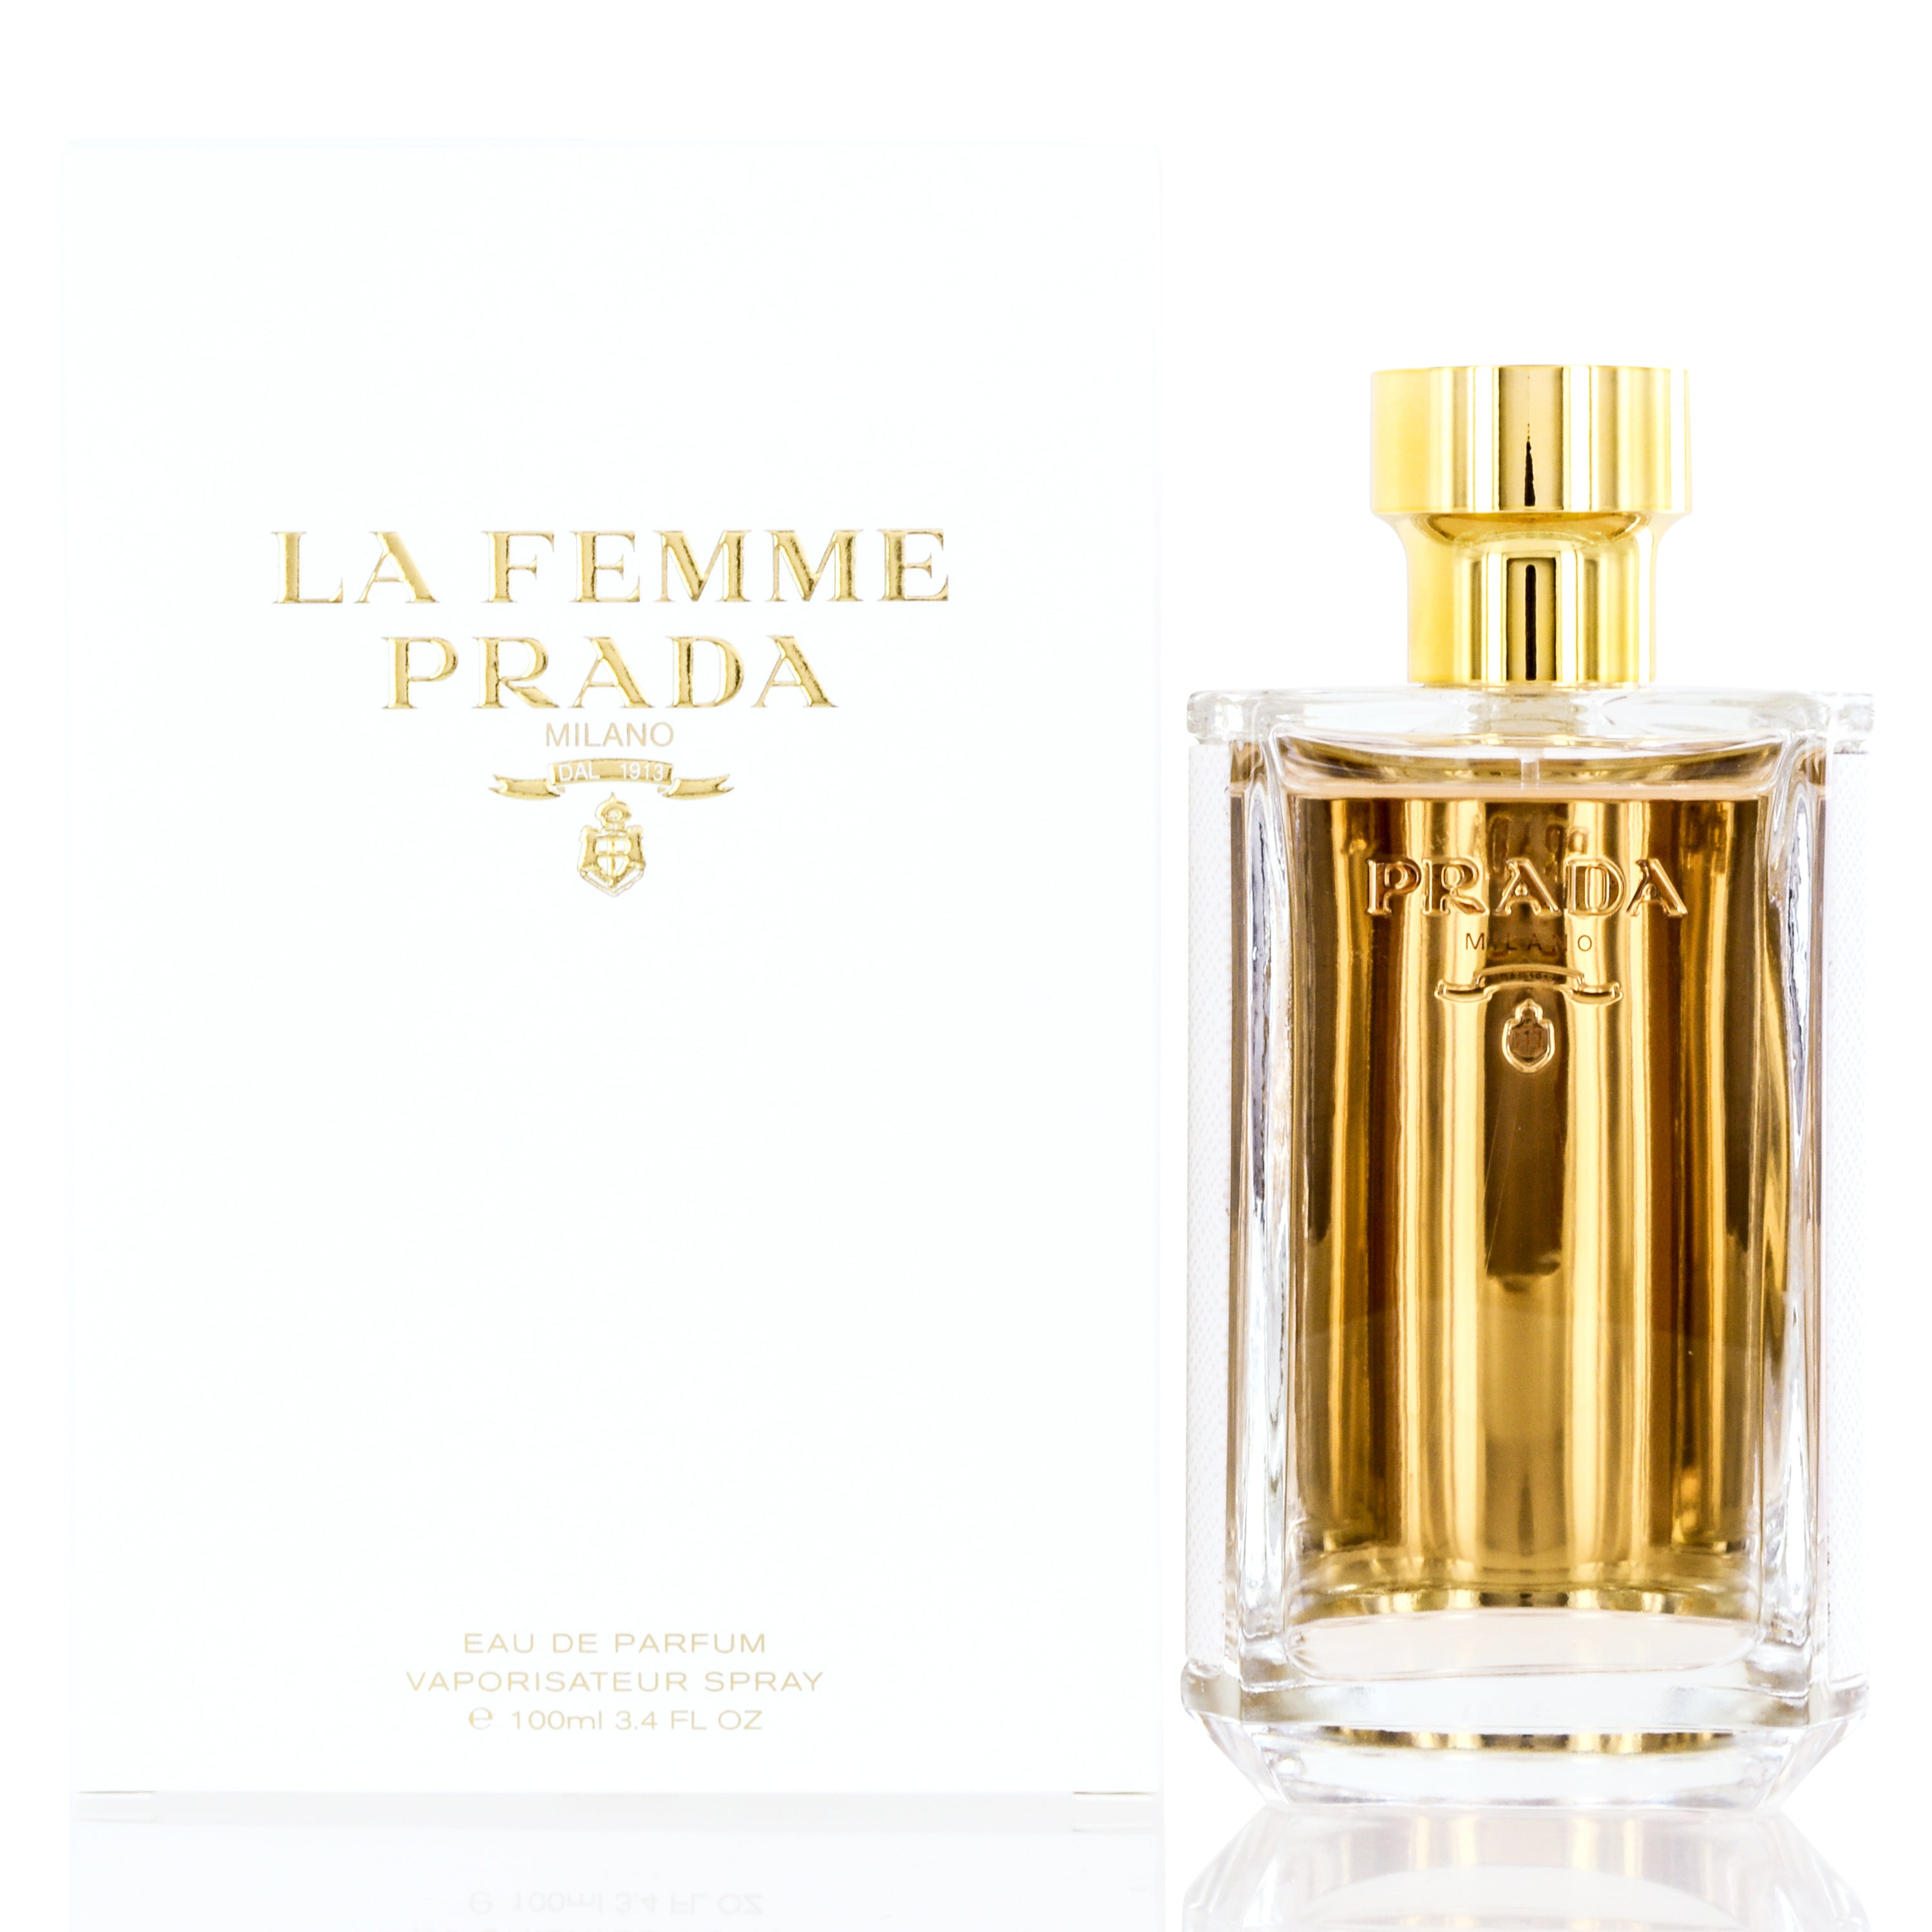 Prada At Buy OverstockOur Best Fragrances Perfumes Online Women's Sj3A4R5qcL